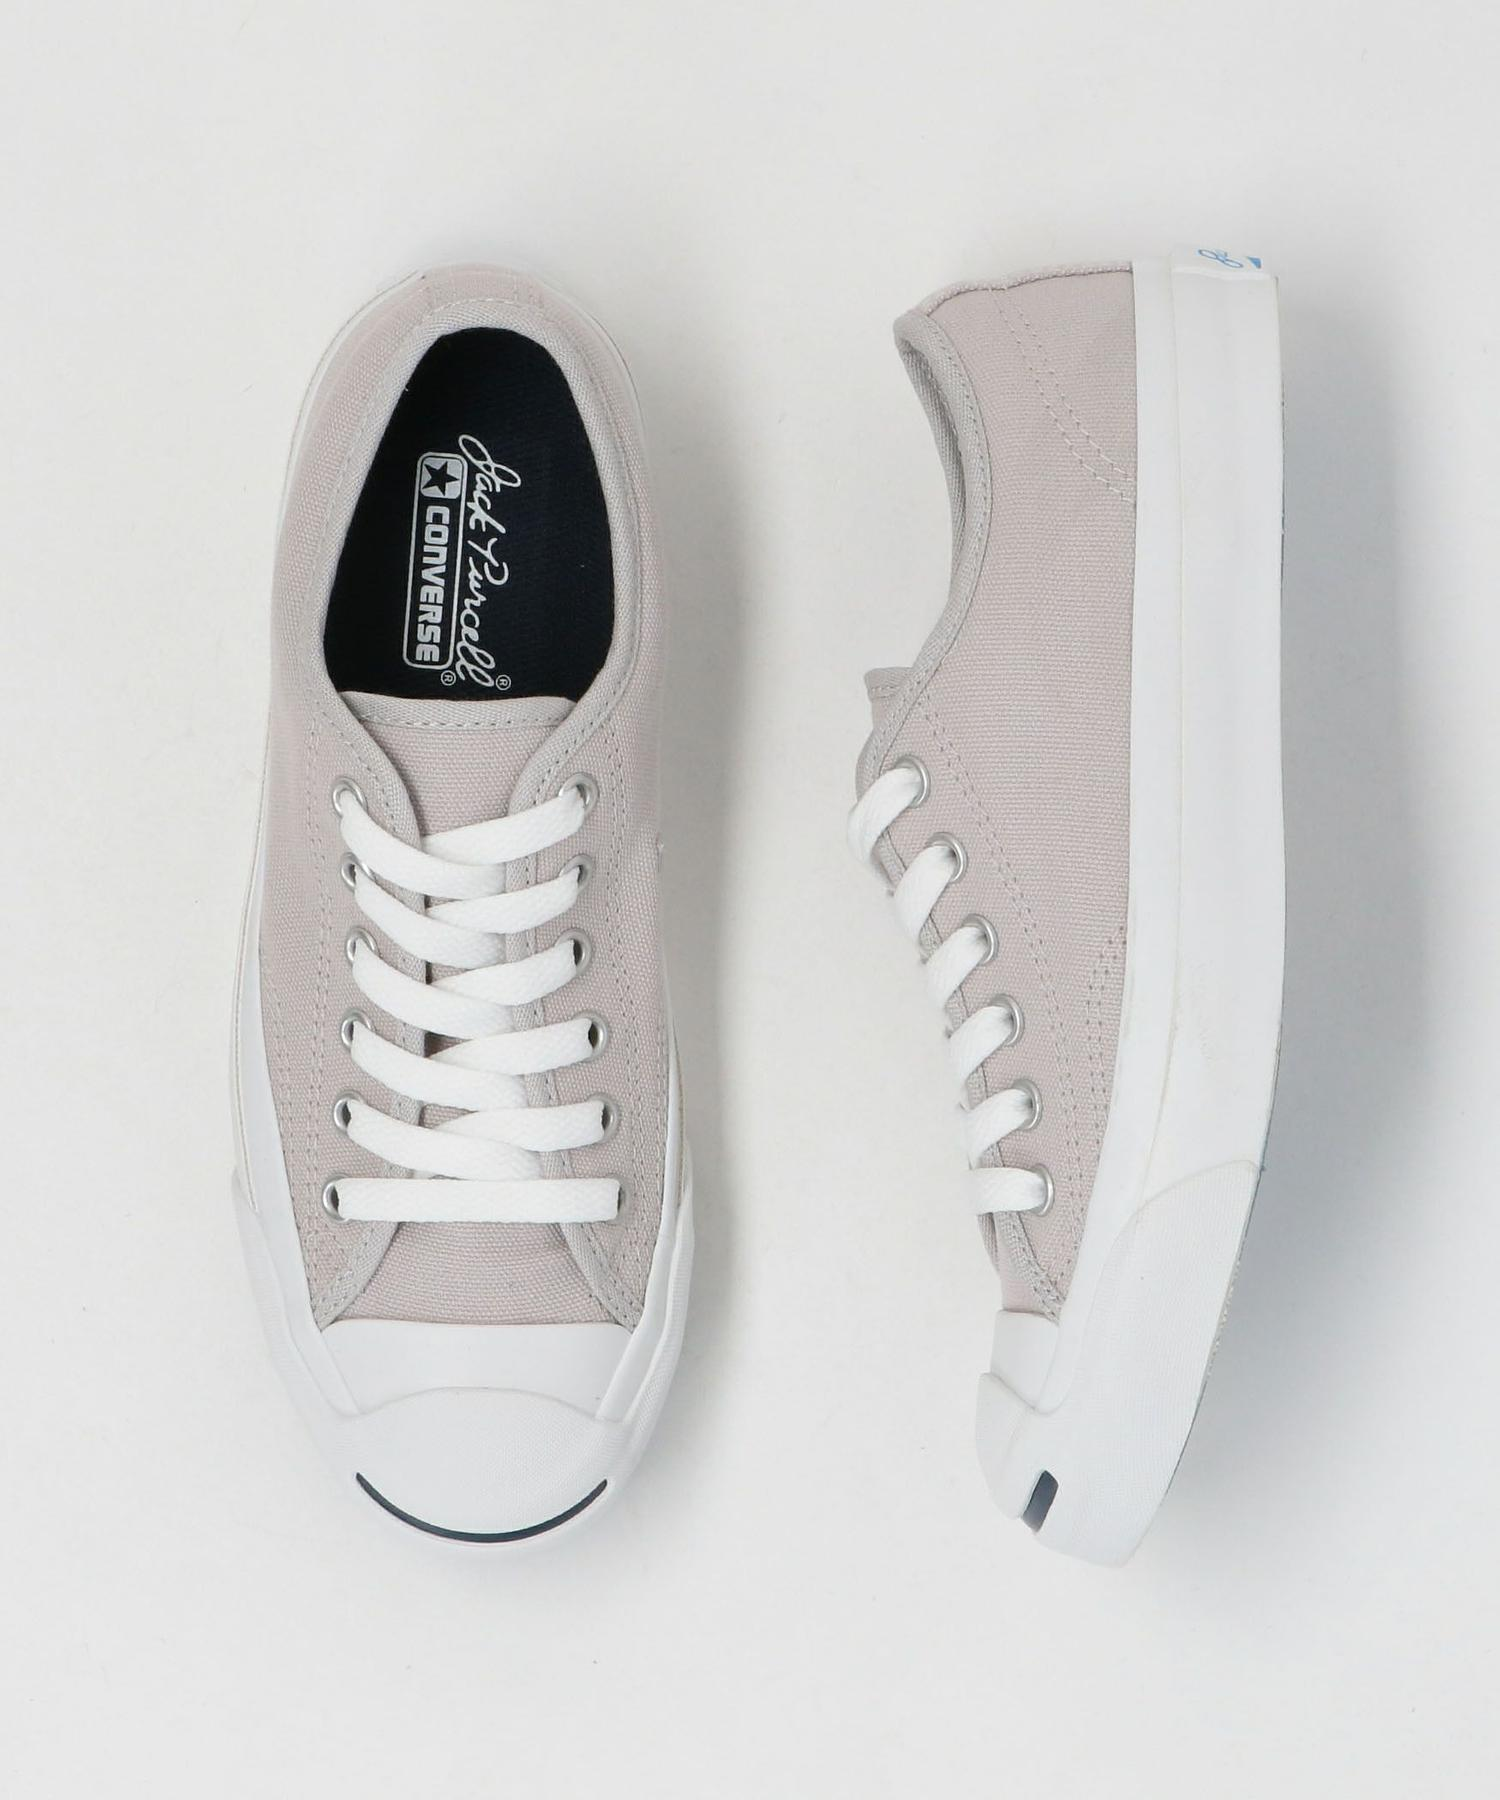 JACK PURCELL スニーカー